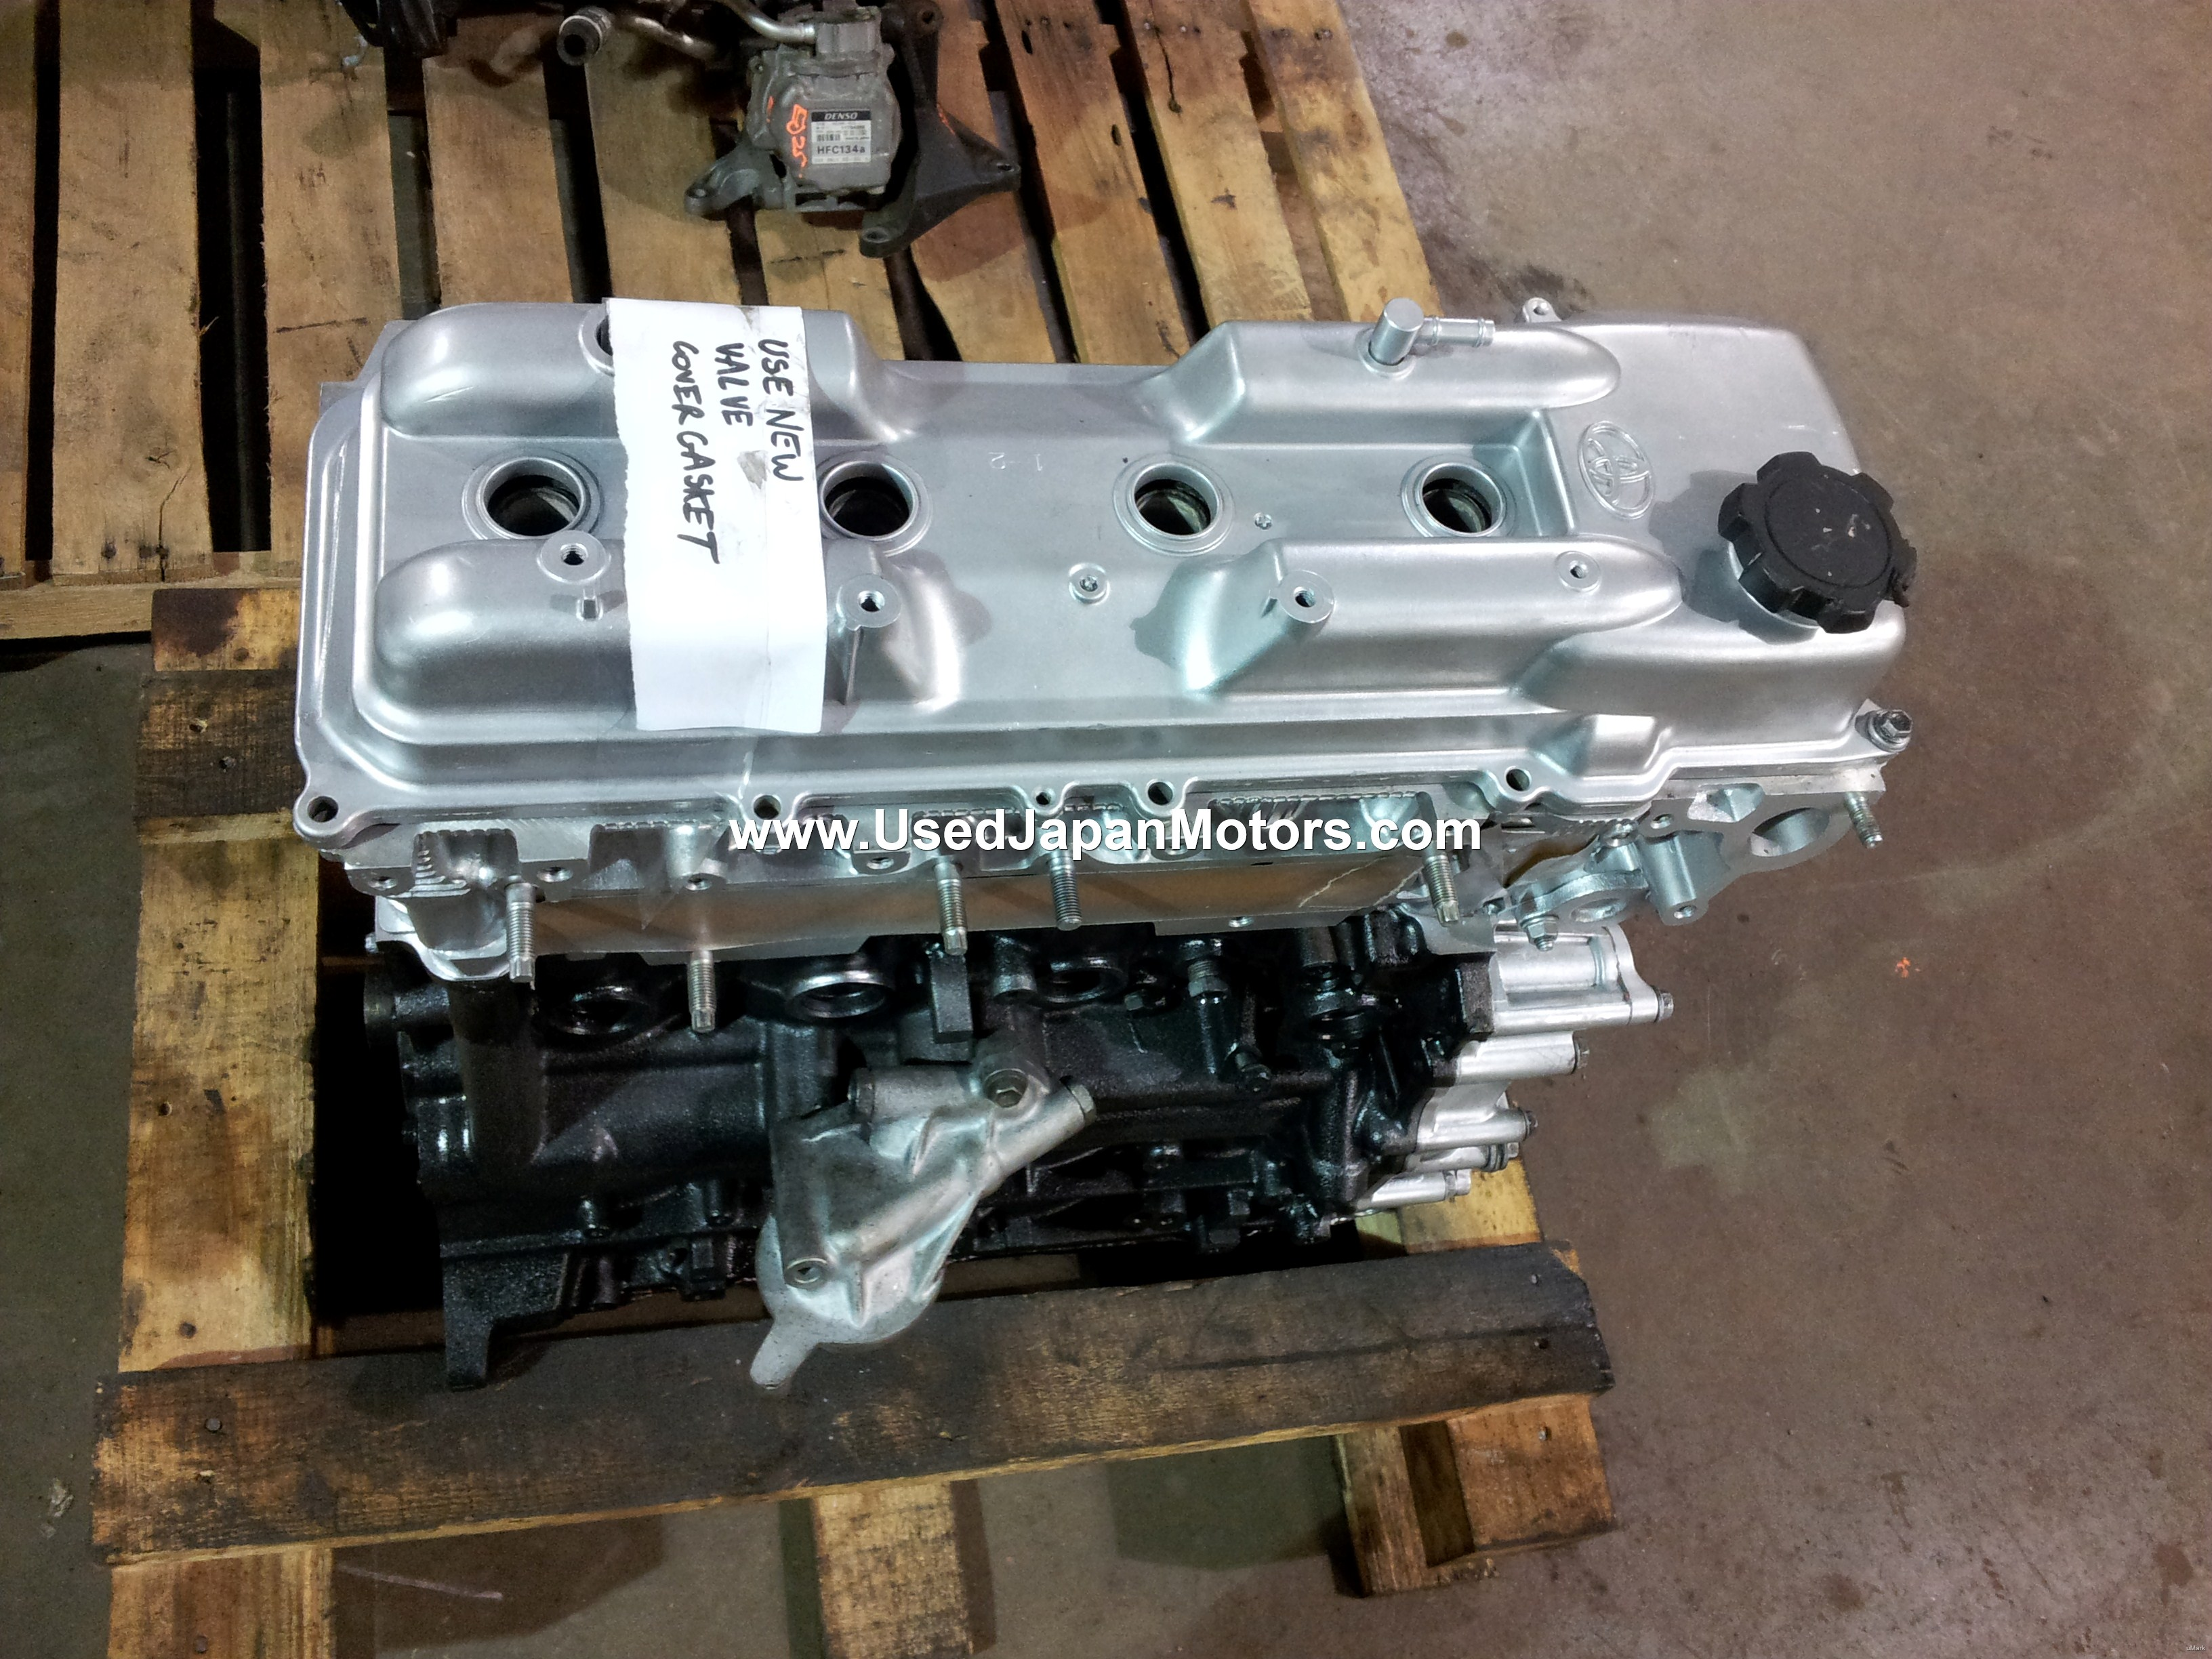 Toyota T100 4 Cylinder Engine Diagram Auto Electrical Wiring Free